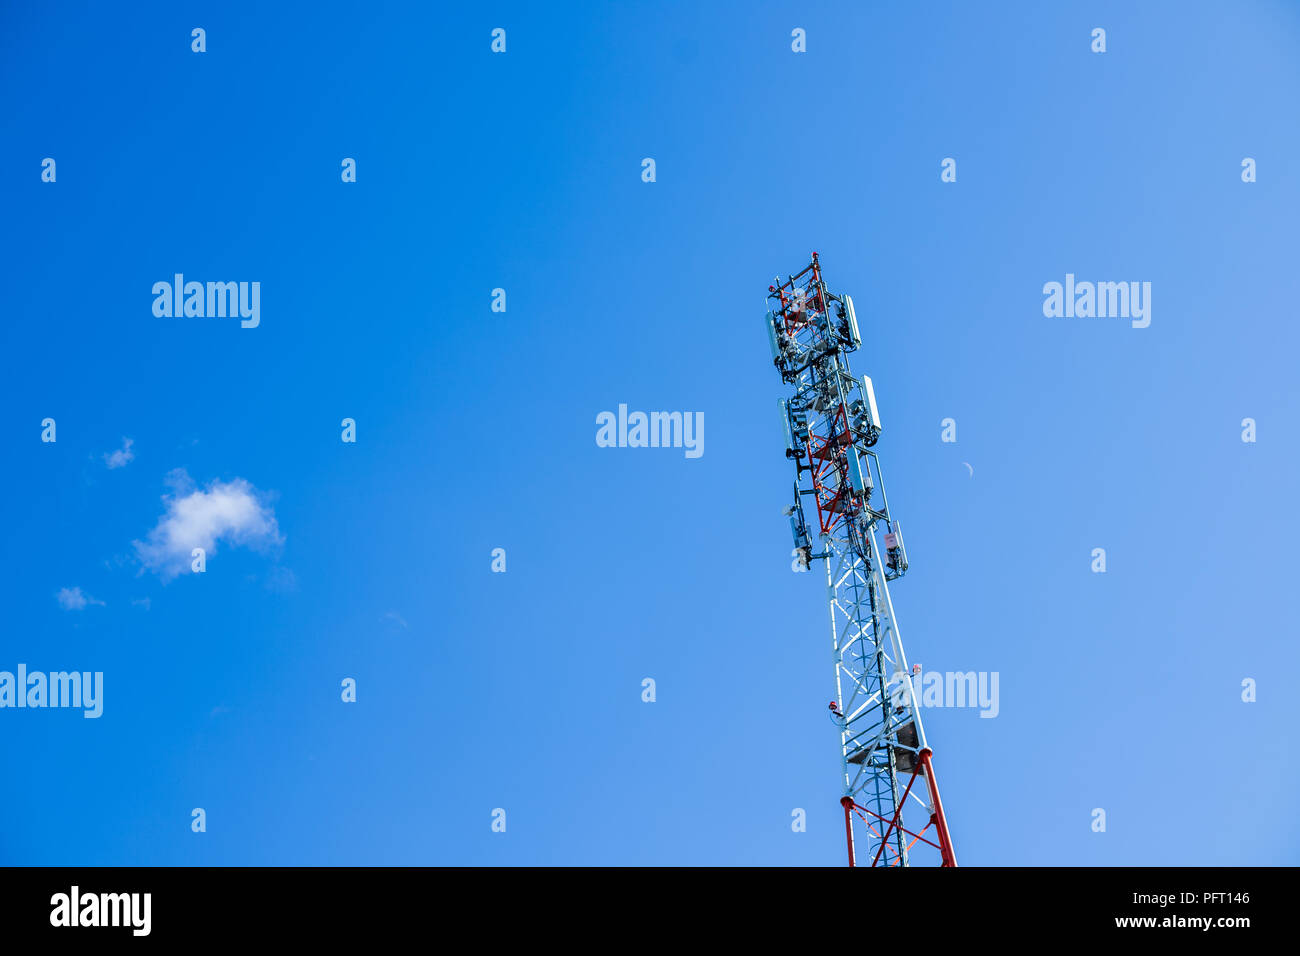 Mobile phone Telecommunication Radio antenna Tower. Cell phone tower.phone base station with TV and wireless internet antennas.Copy space.Huge communication antenna tower and satellite dishes against blue sky. - Stock Image